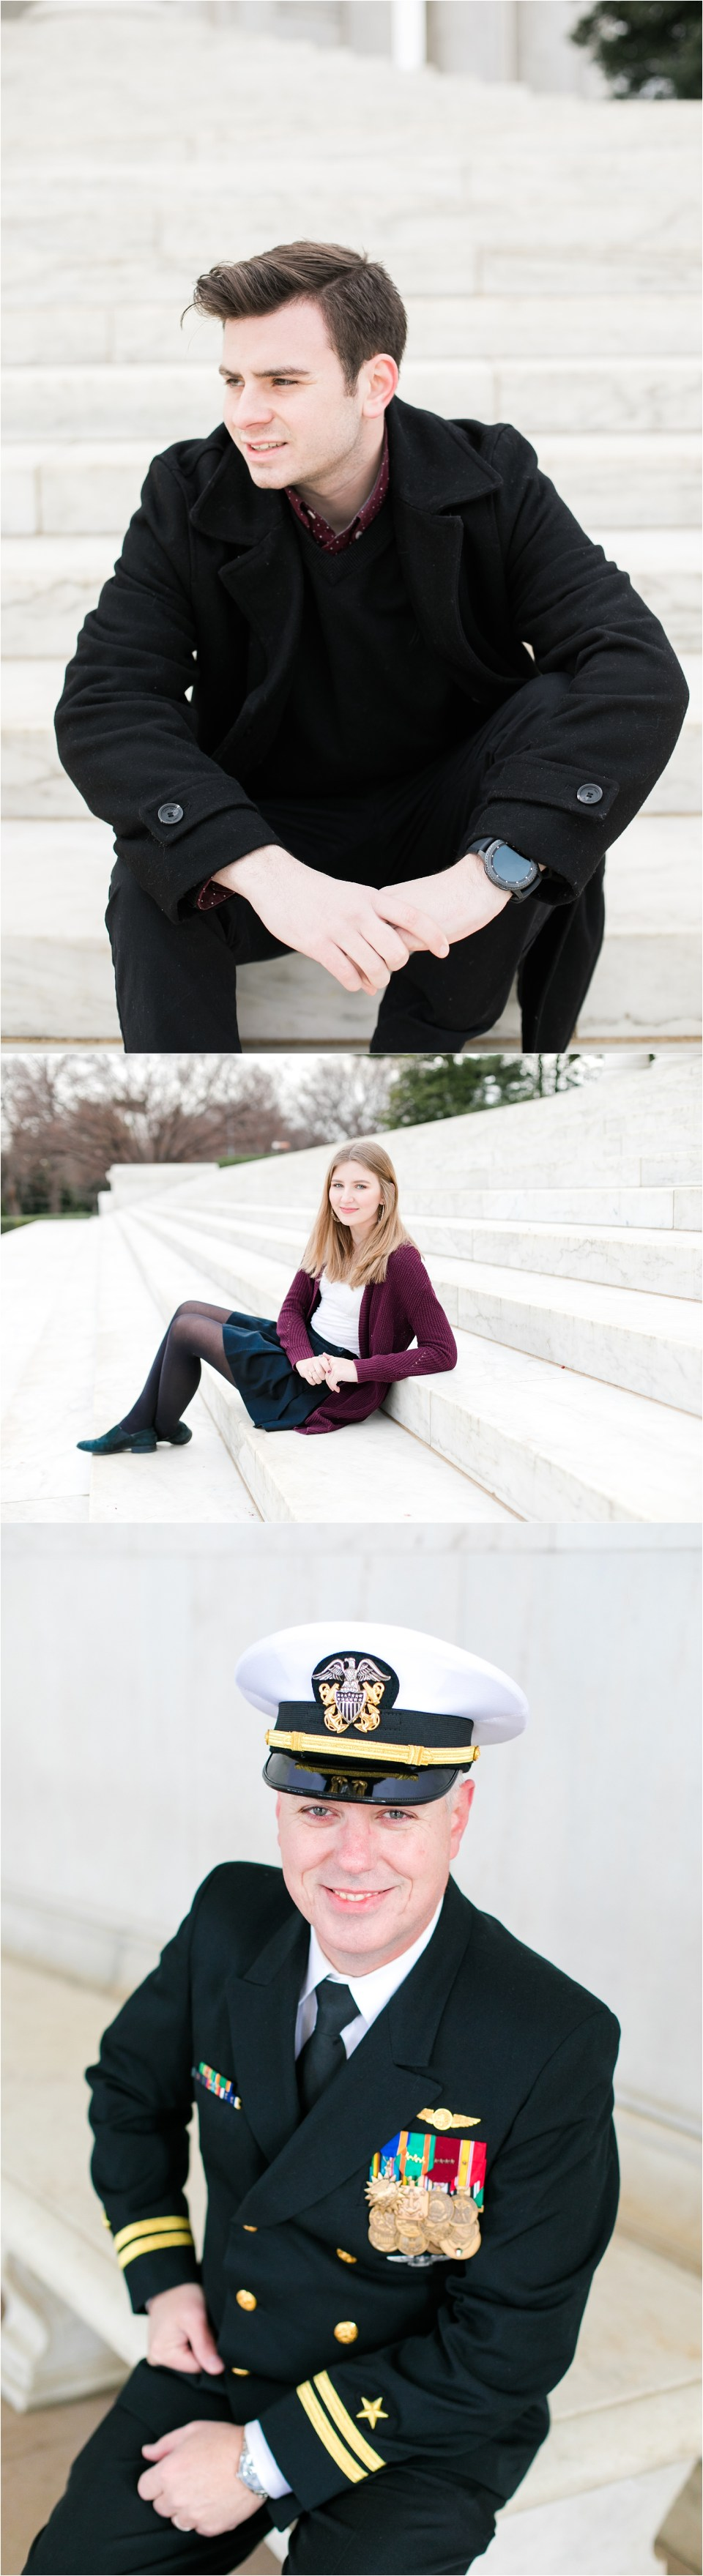 Washington D.C. Senior Session